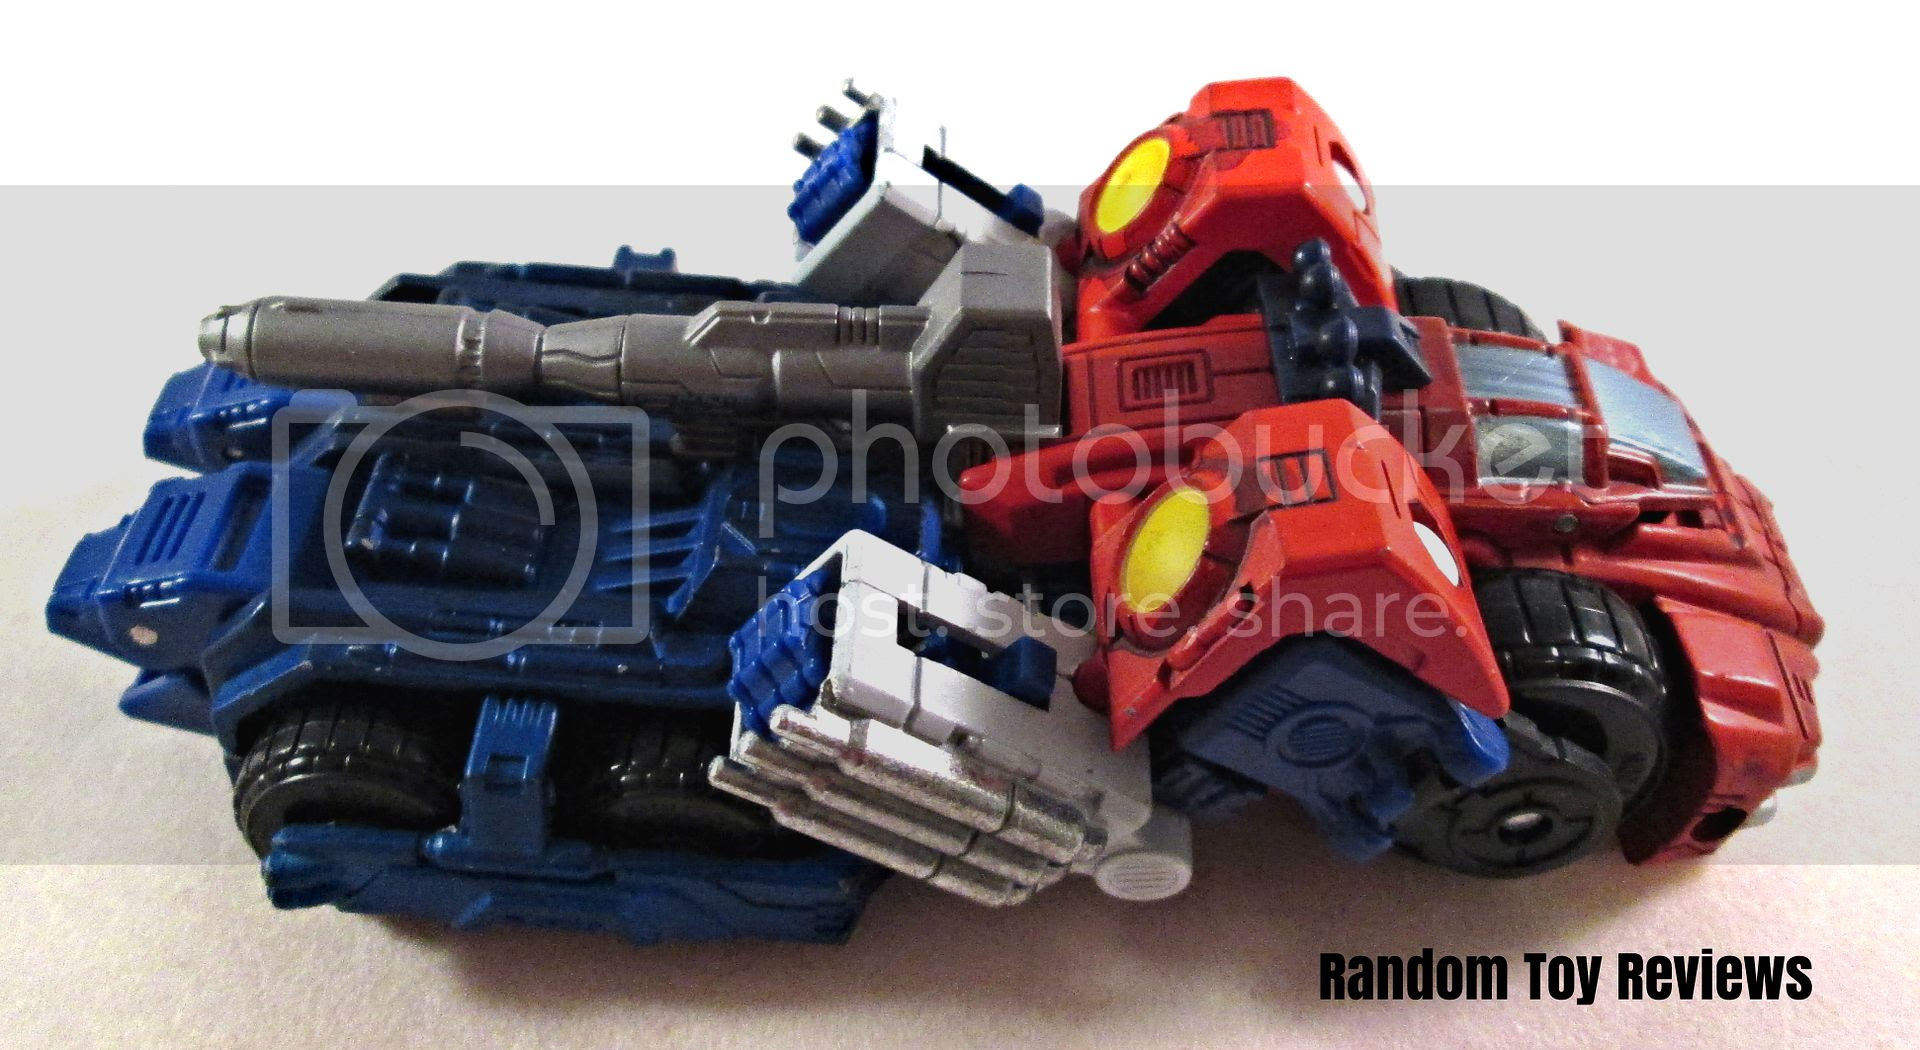 Titanium Optimus Prime photo 349_zps860fad9b.jpg